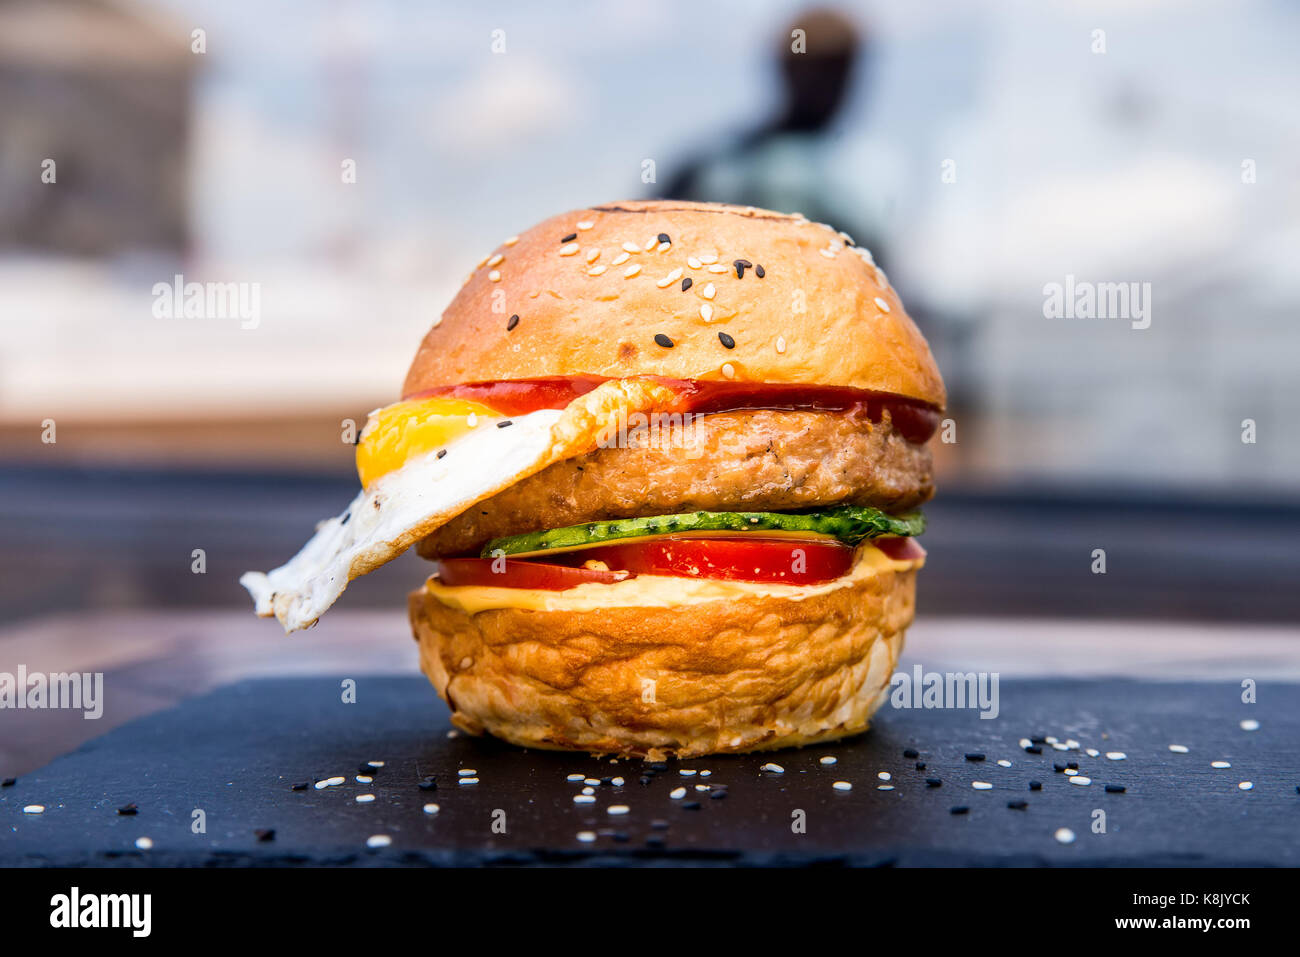 Delicious restaurant hamburger with fried egg - Stock Image